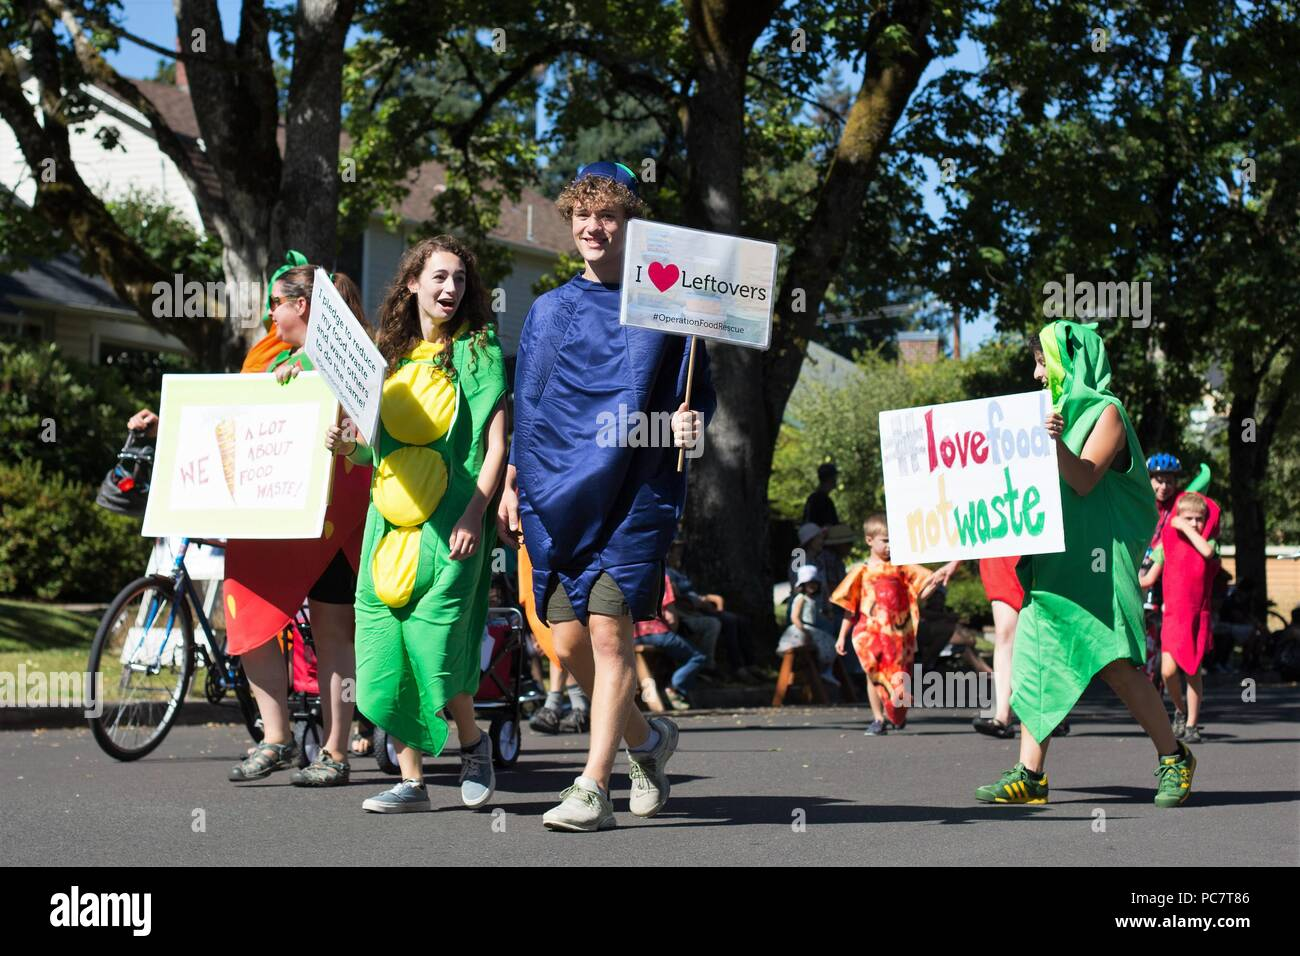 People dressed as vegetables protest food waste, at the Eug